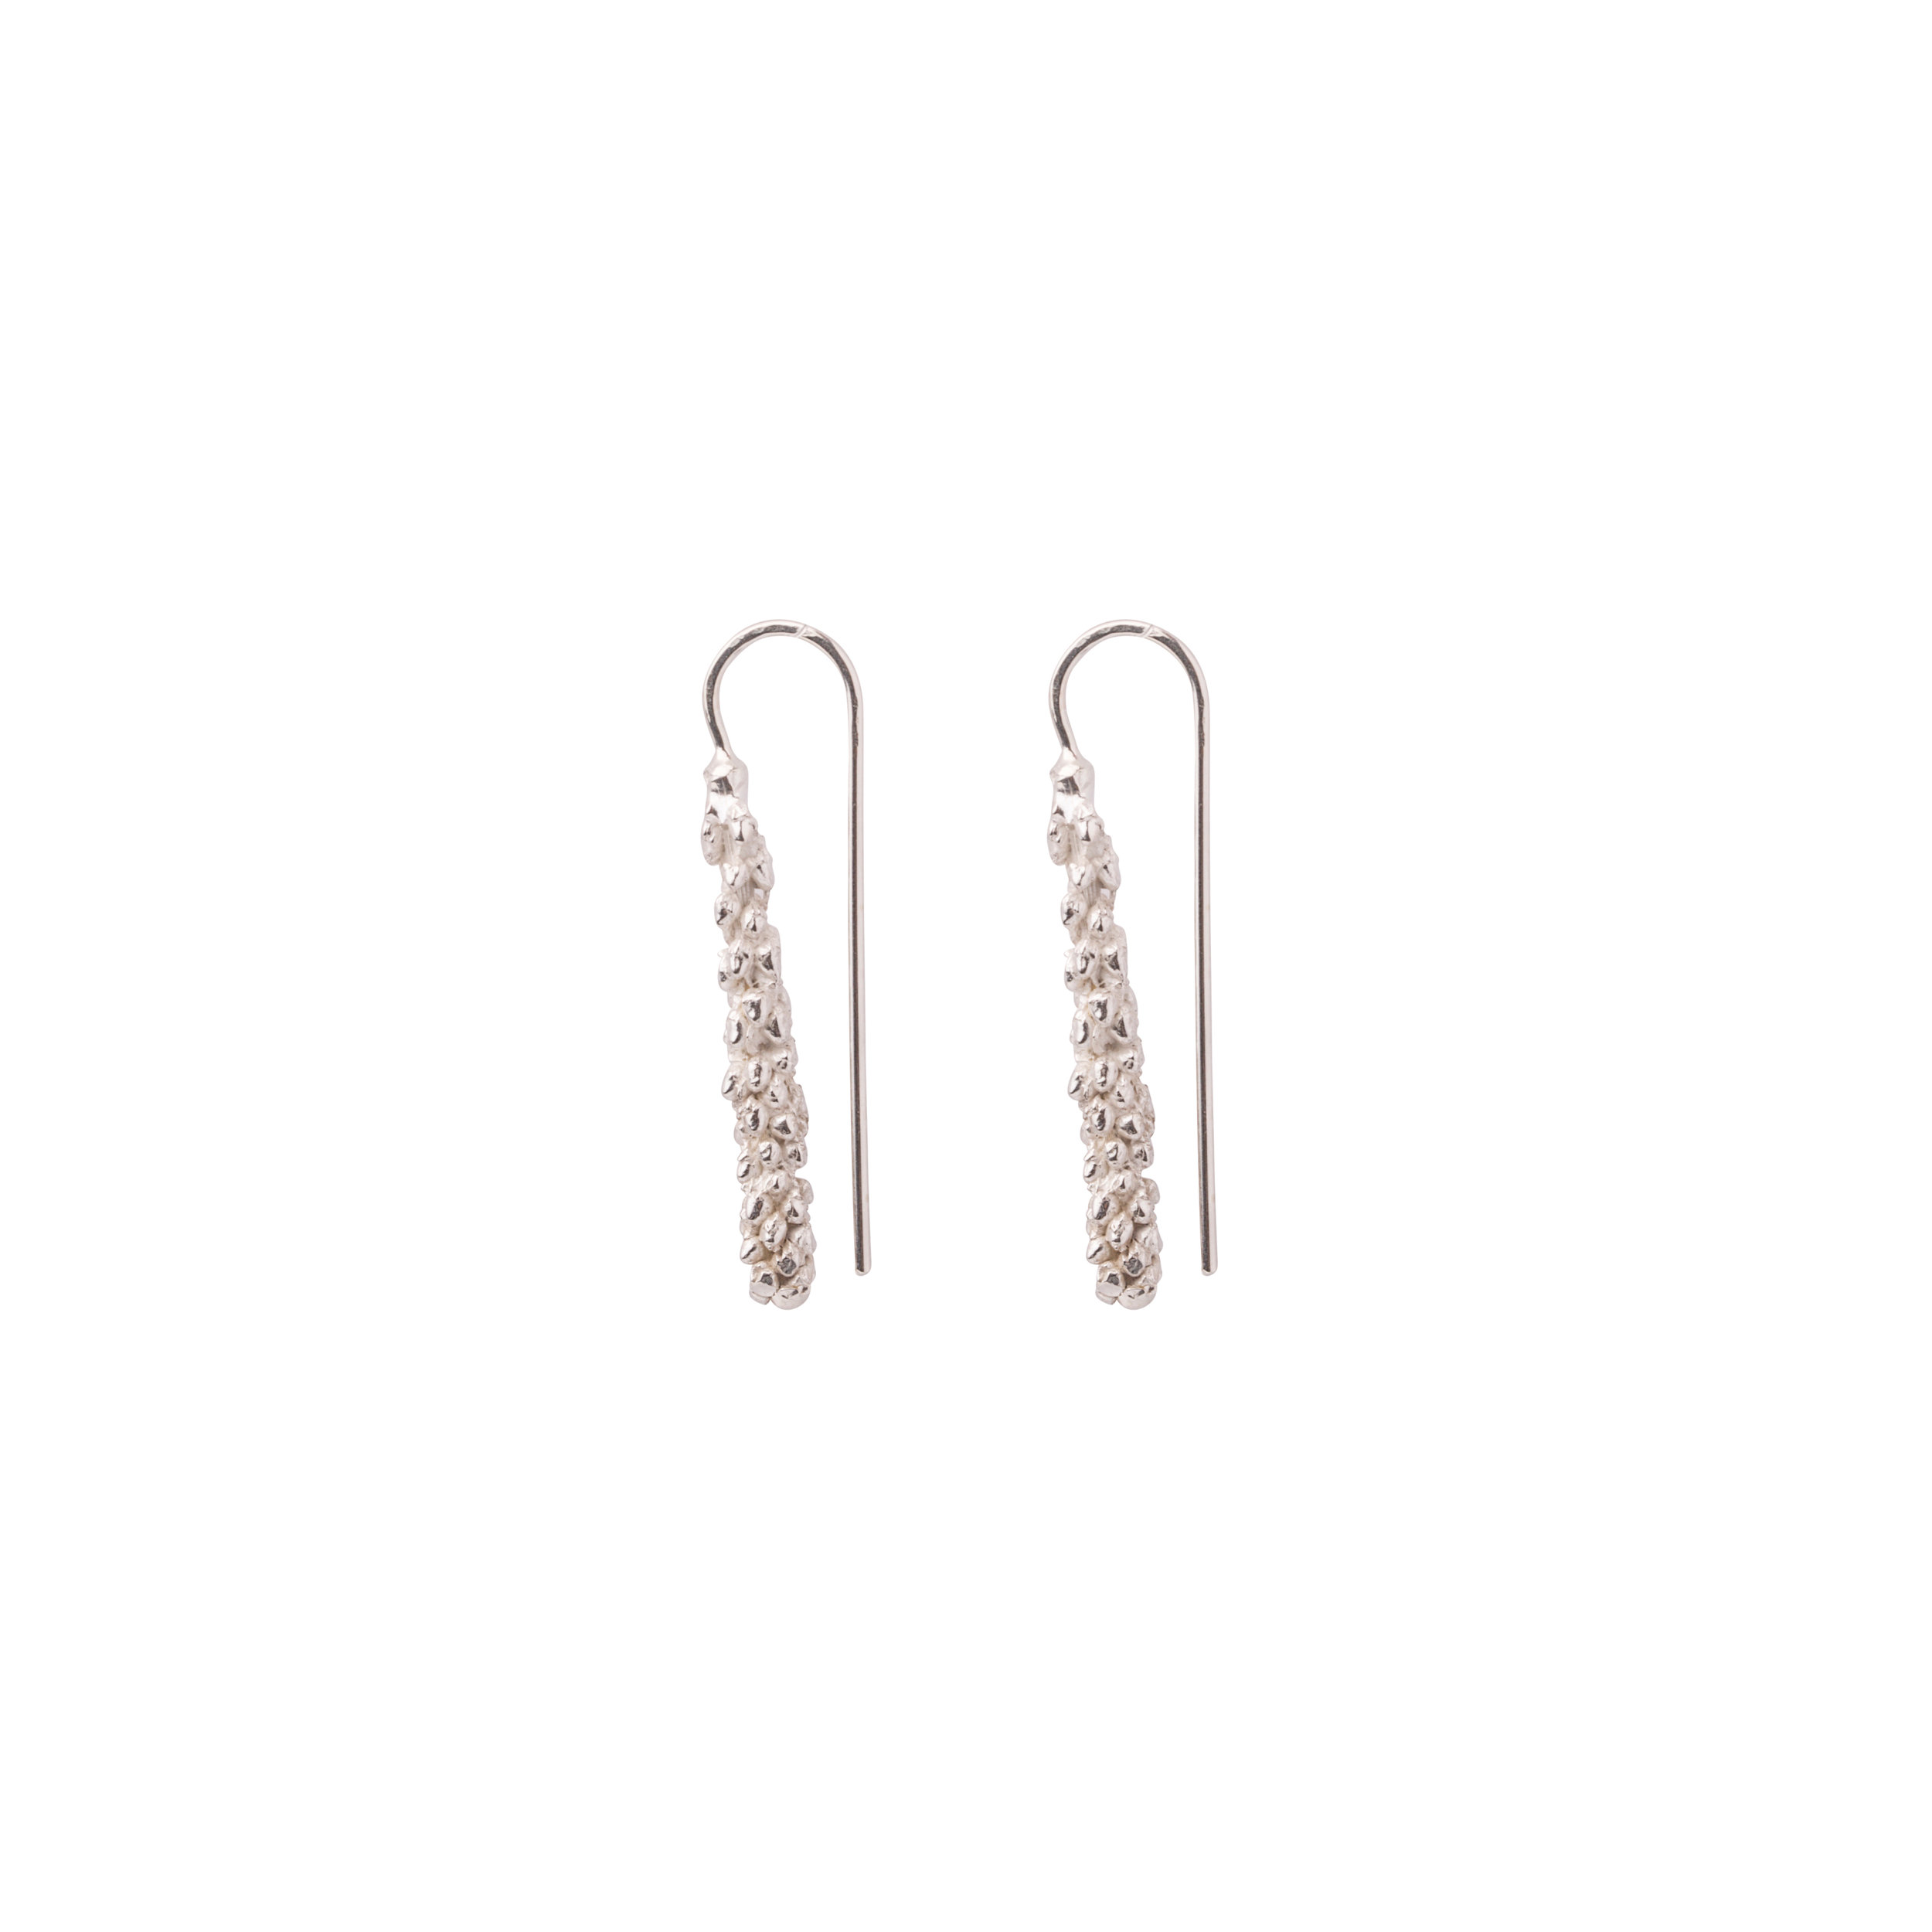 earrings_6270.JPG